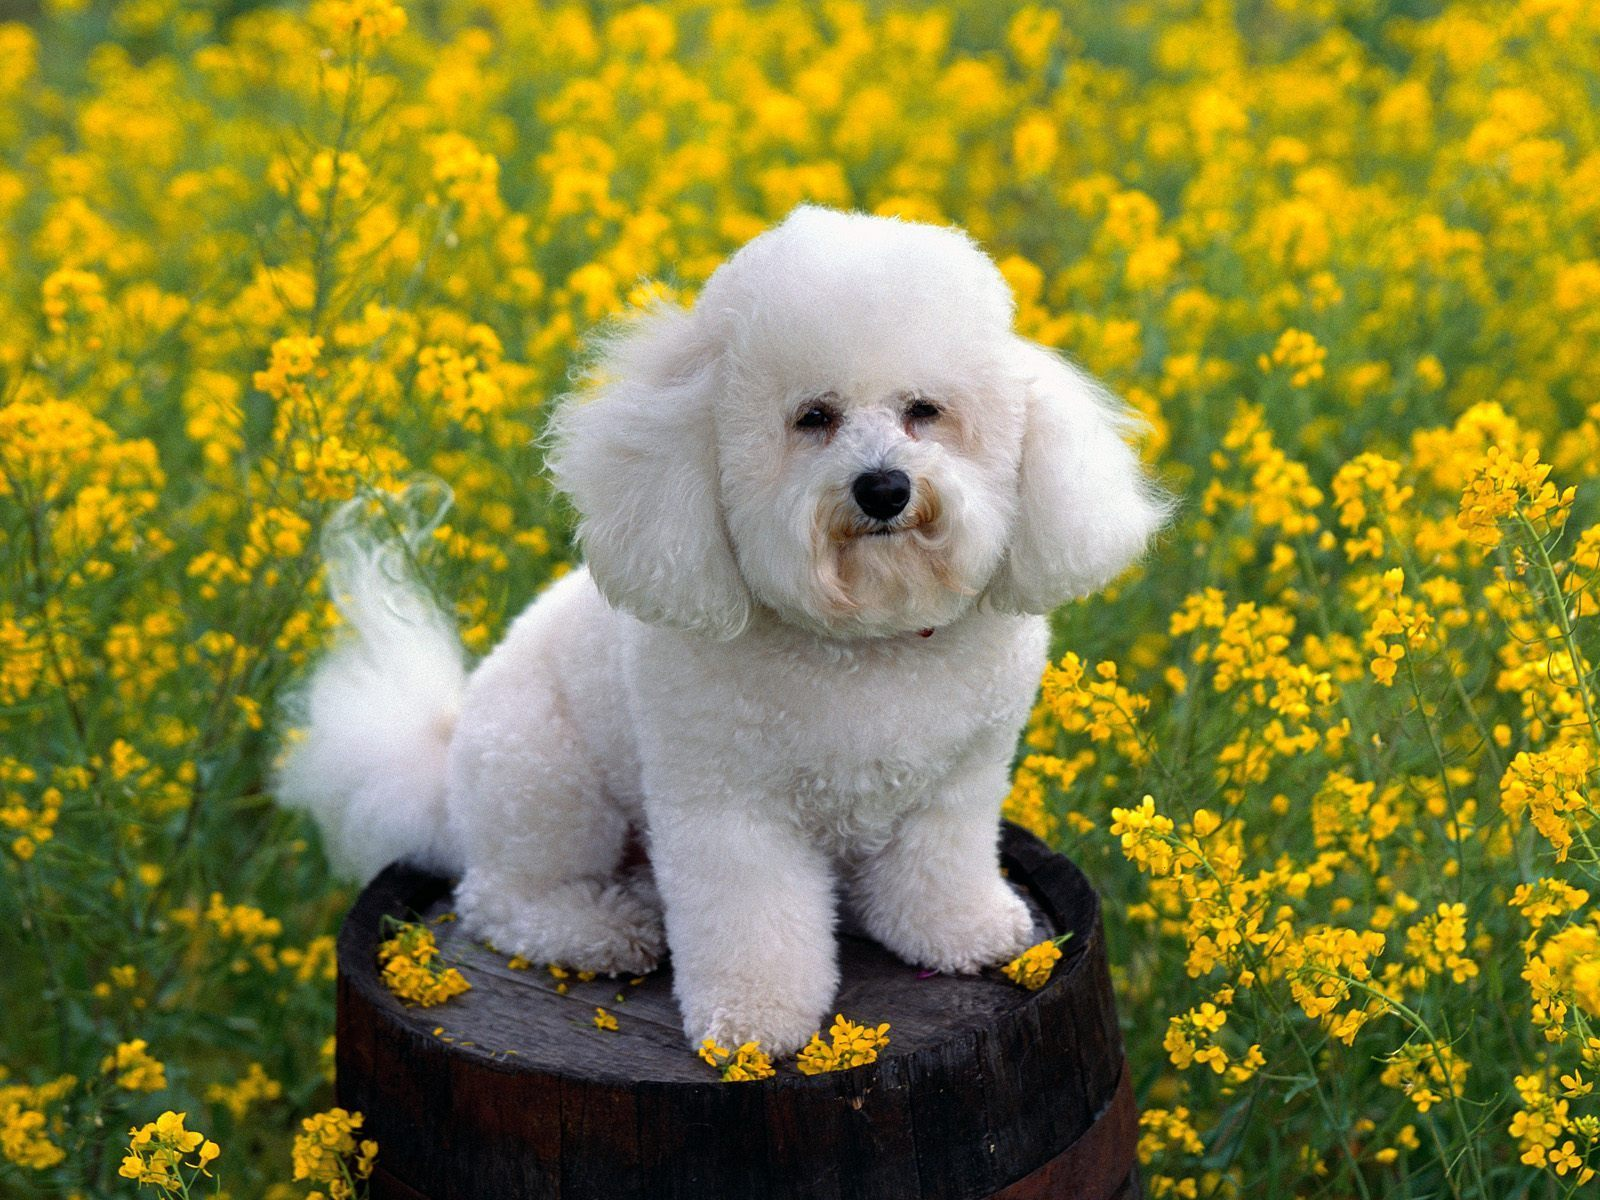 bichon frise - Dogs Wallpaper (13248856) - Fanpop